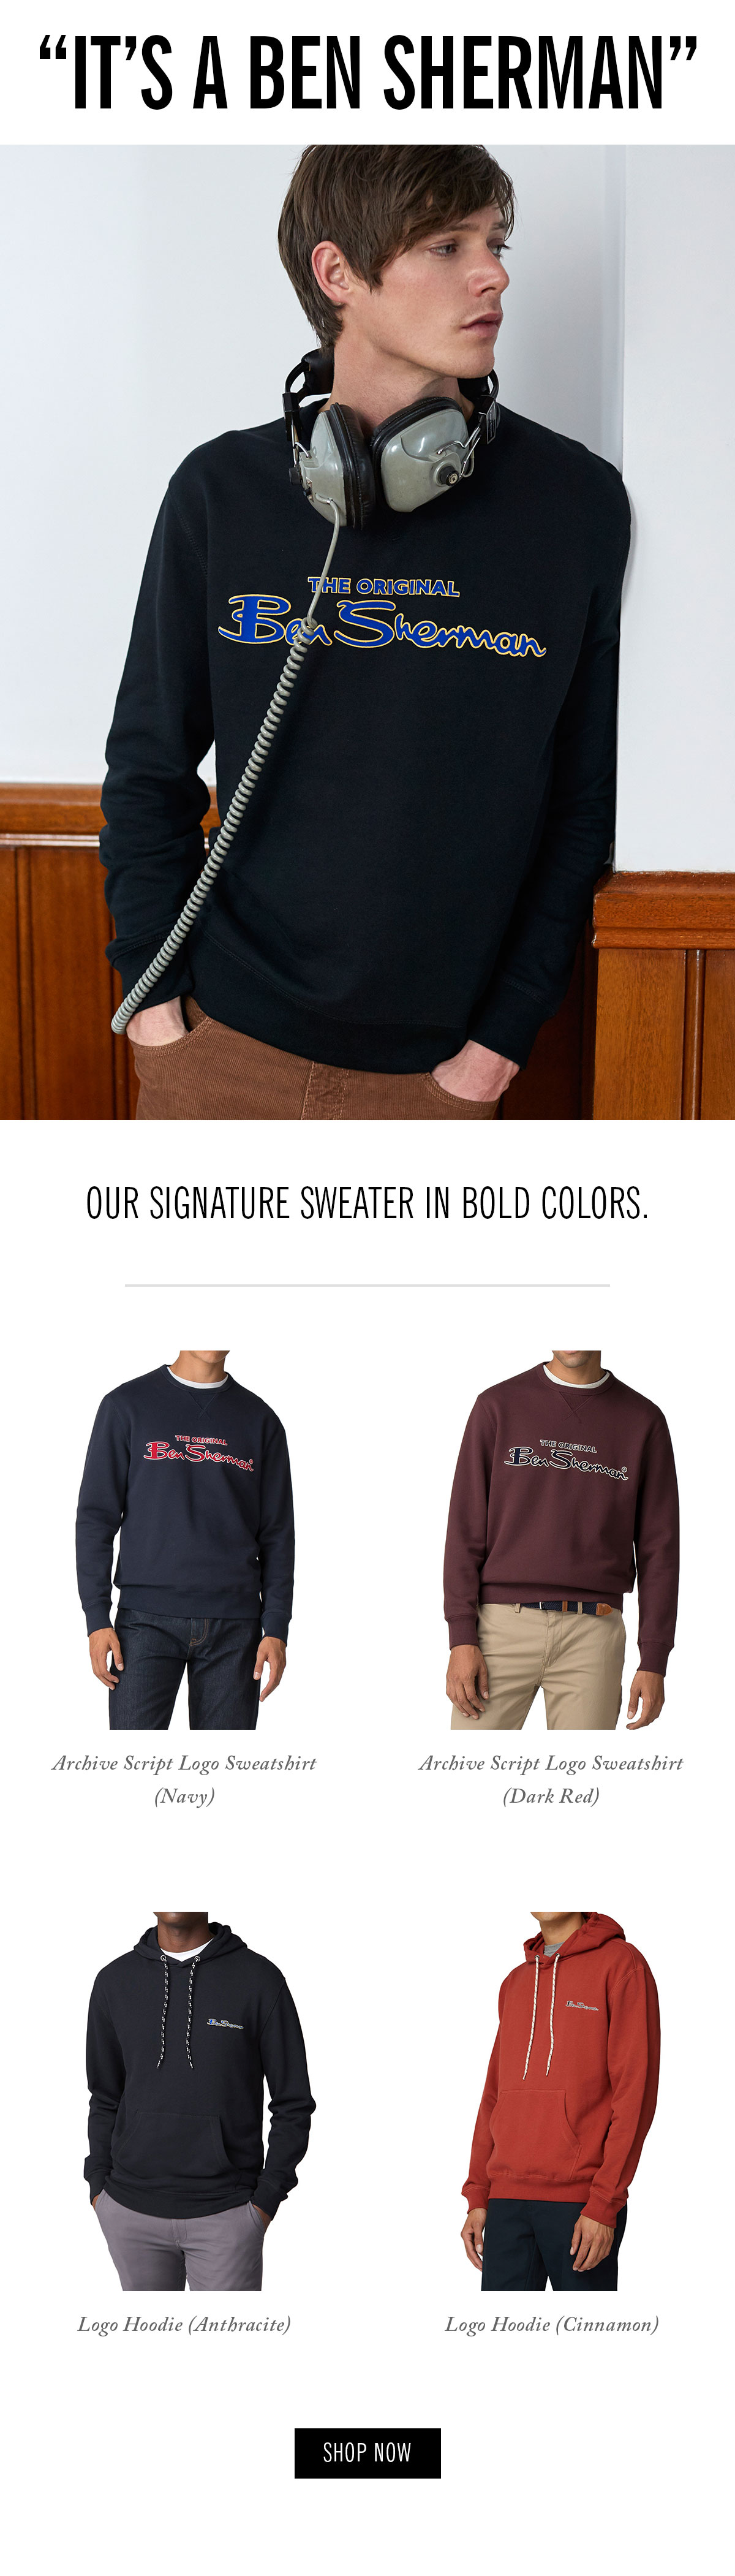 It's a Ben Sherman | sweaters with the Ben Sherman script logo across the chest